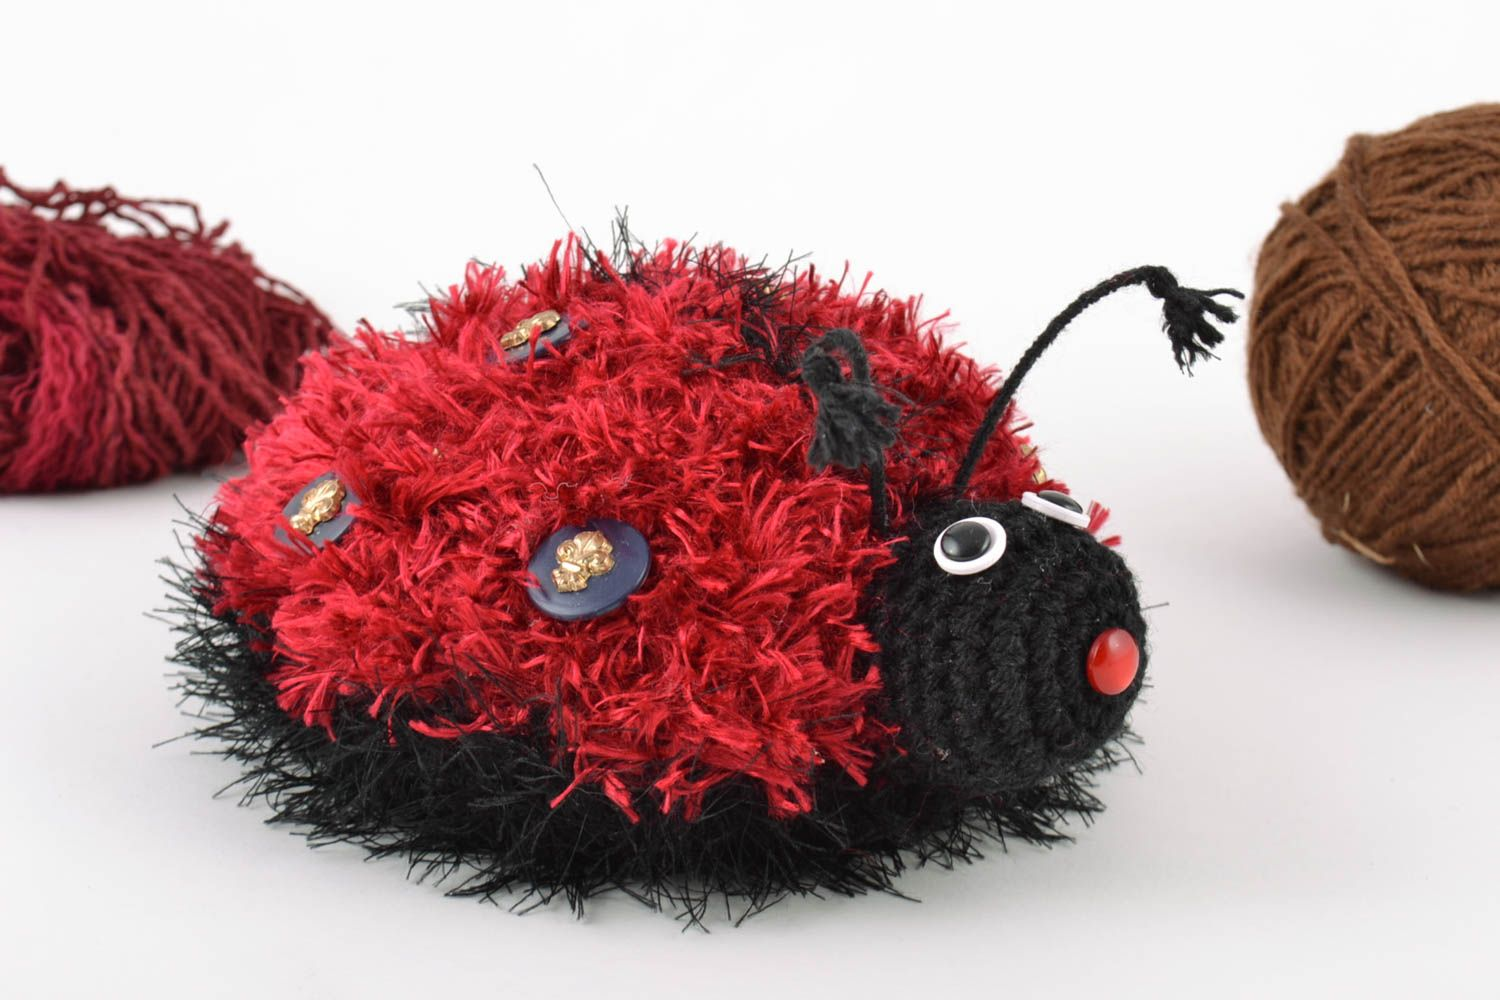 knitted toys Handmade soft crochet wool toy for children beautiful Ladybug amigurumi - MADEheart.com